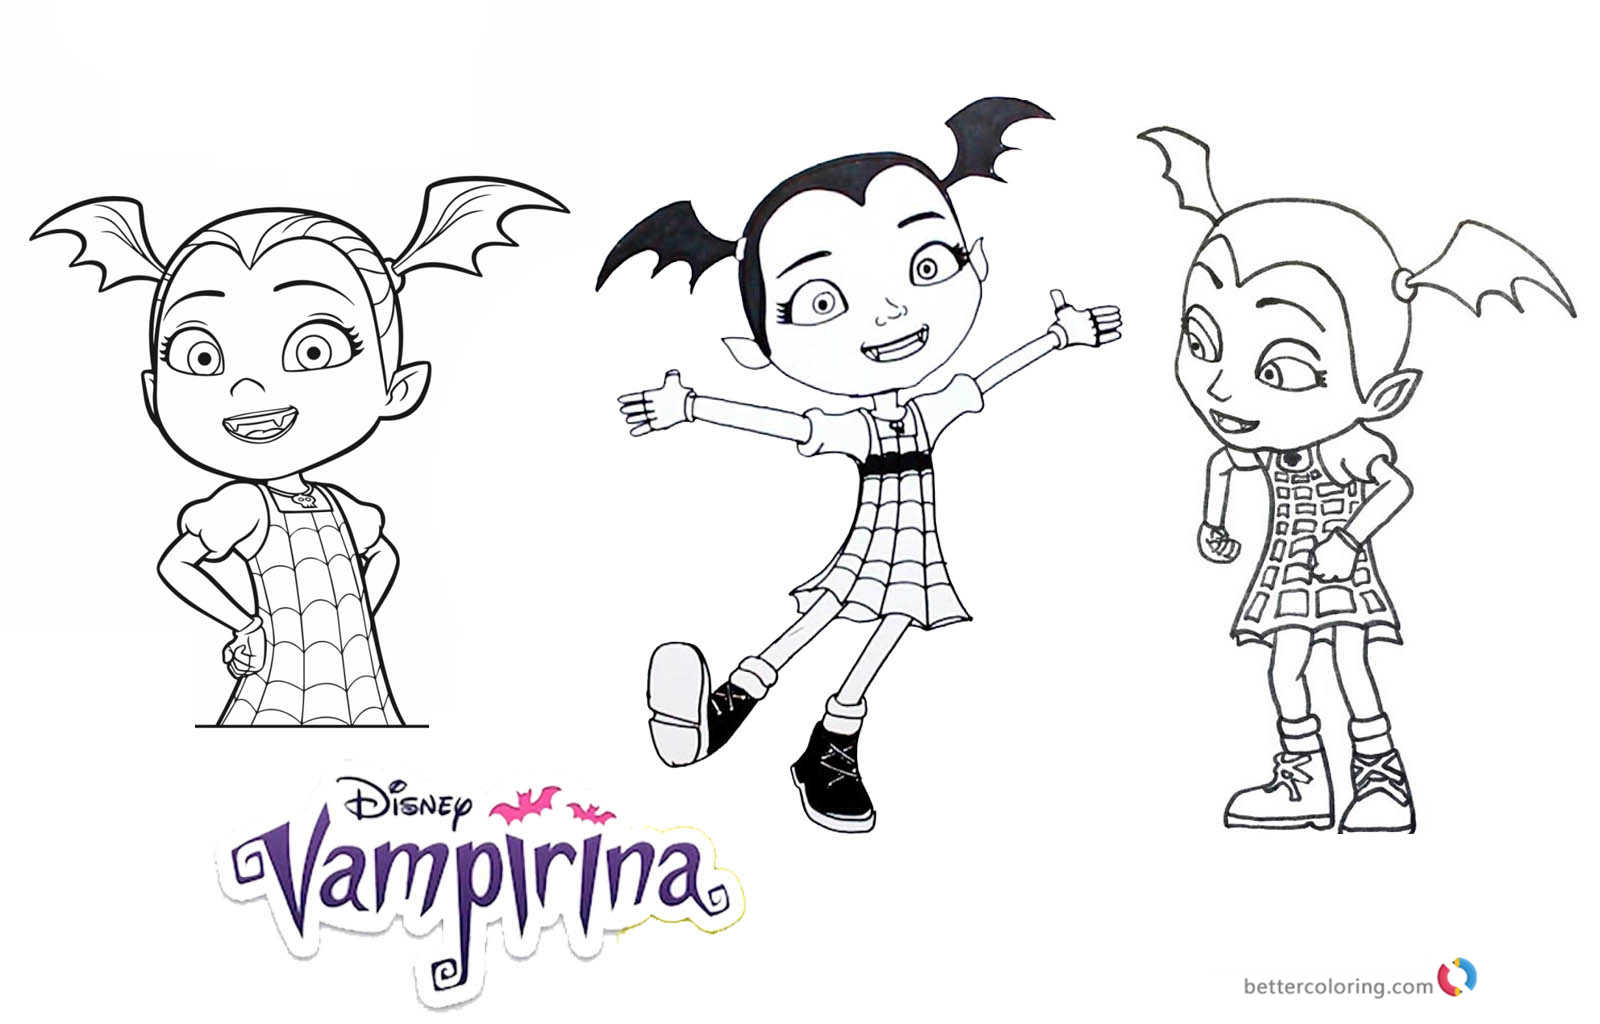 Dibujos Para Colorear Vampirina: Vampirina Coloring Pages 3 In 1